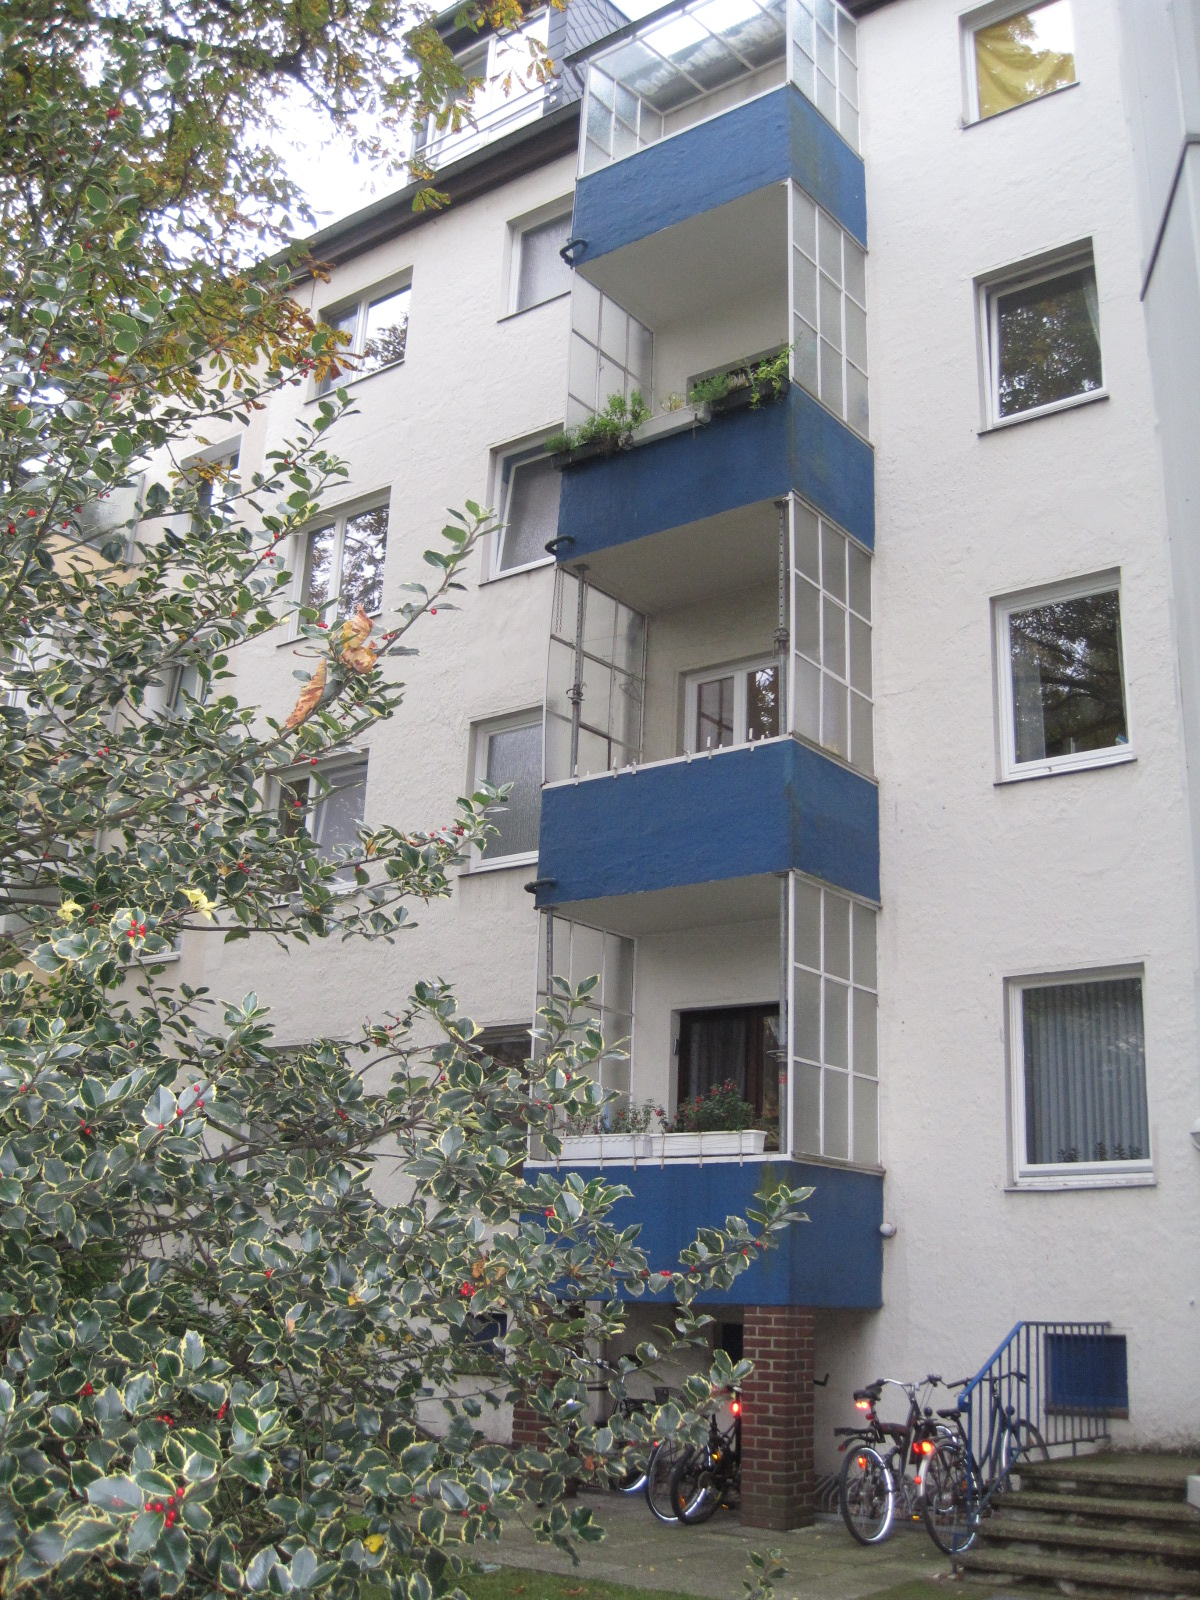 Küche Hannover Mieten Wohnung Miete W 329 Hannover Südstadt Claudia Hermann Immobilien